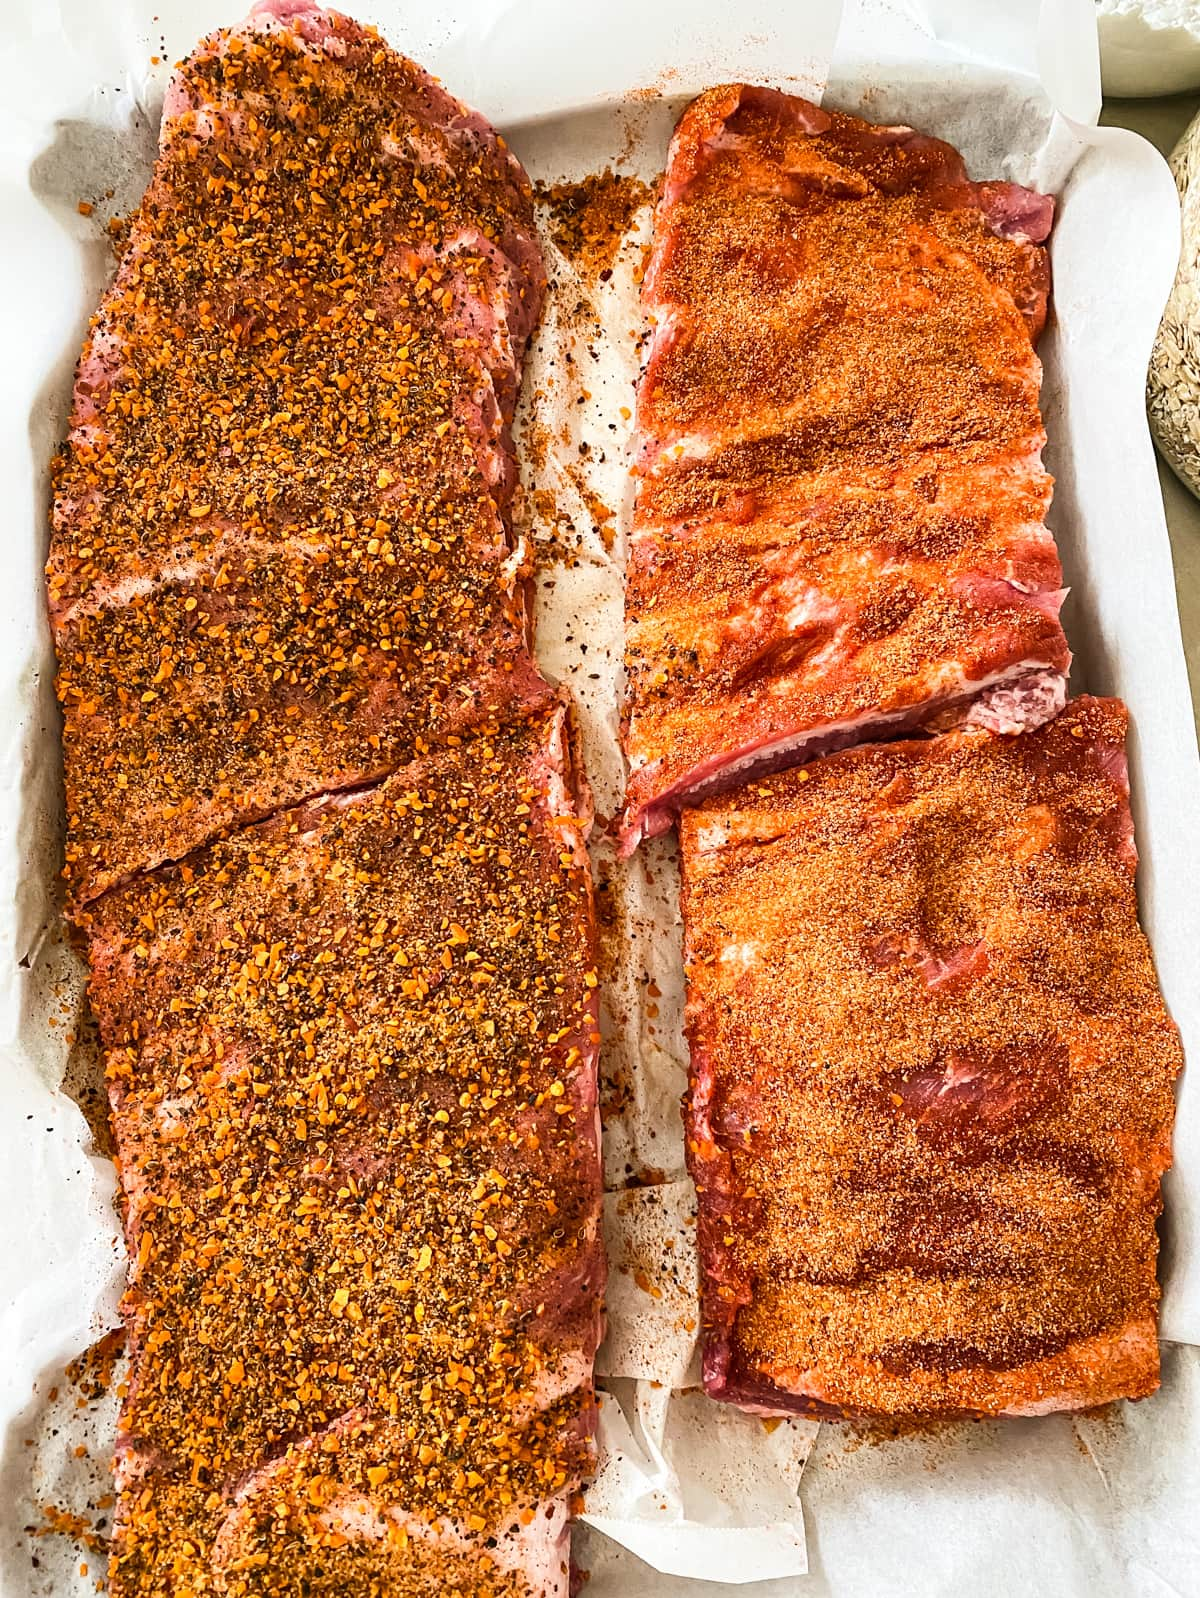 a parchment paper lined tray with two racks for raw ribs covered in a brown sugar spice rub.